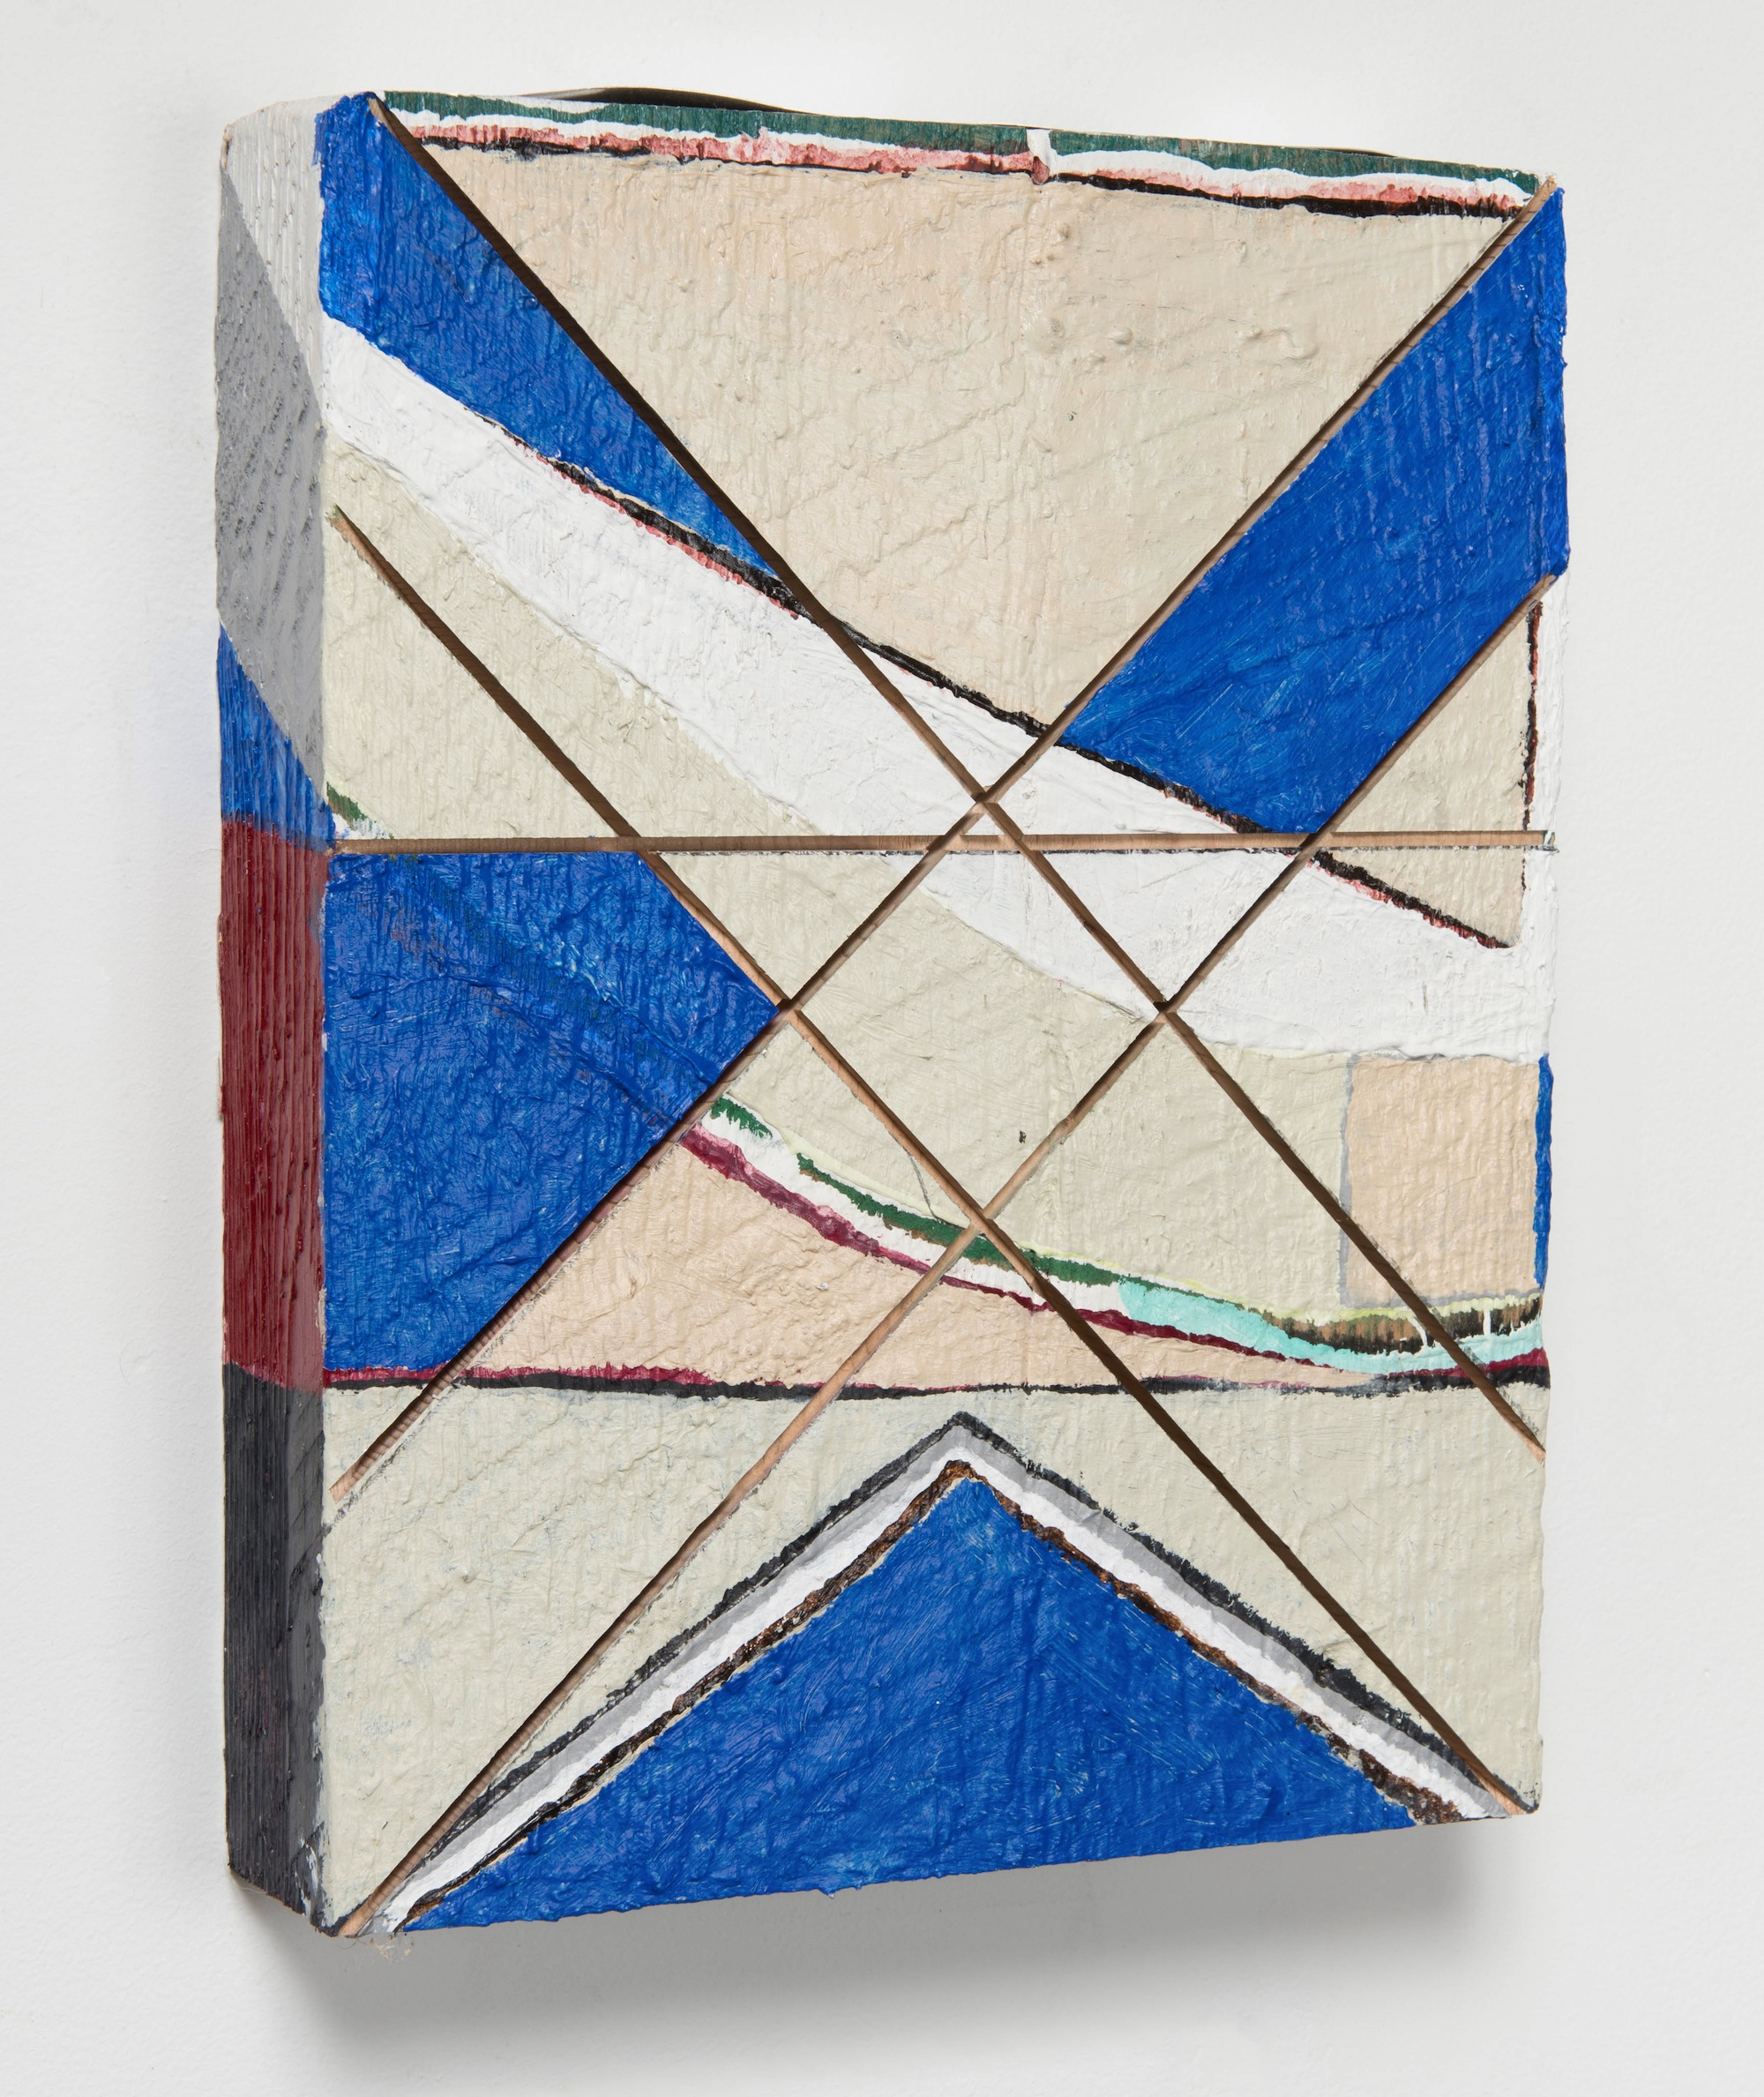 Blue Cross Over , 2018  Acrylic on wood  12 x 9 1/2 x 2 1/4 inches